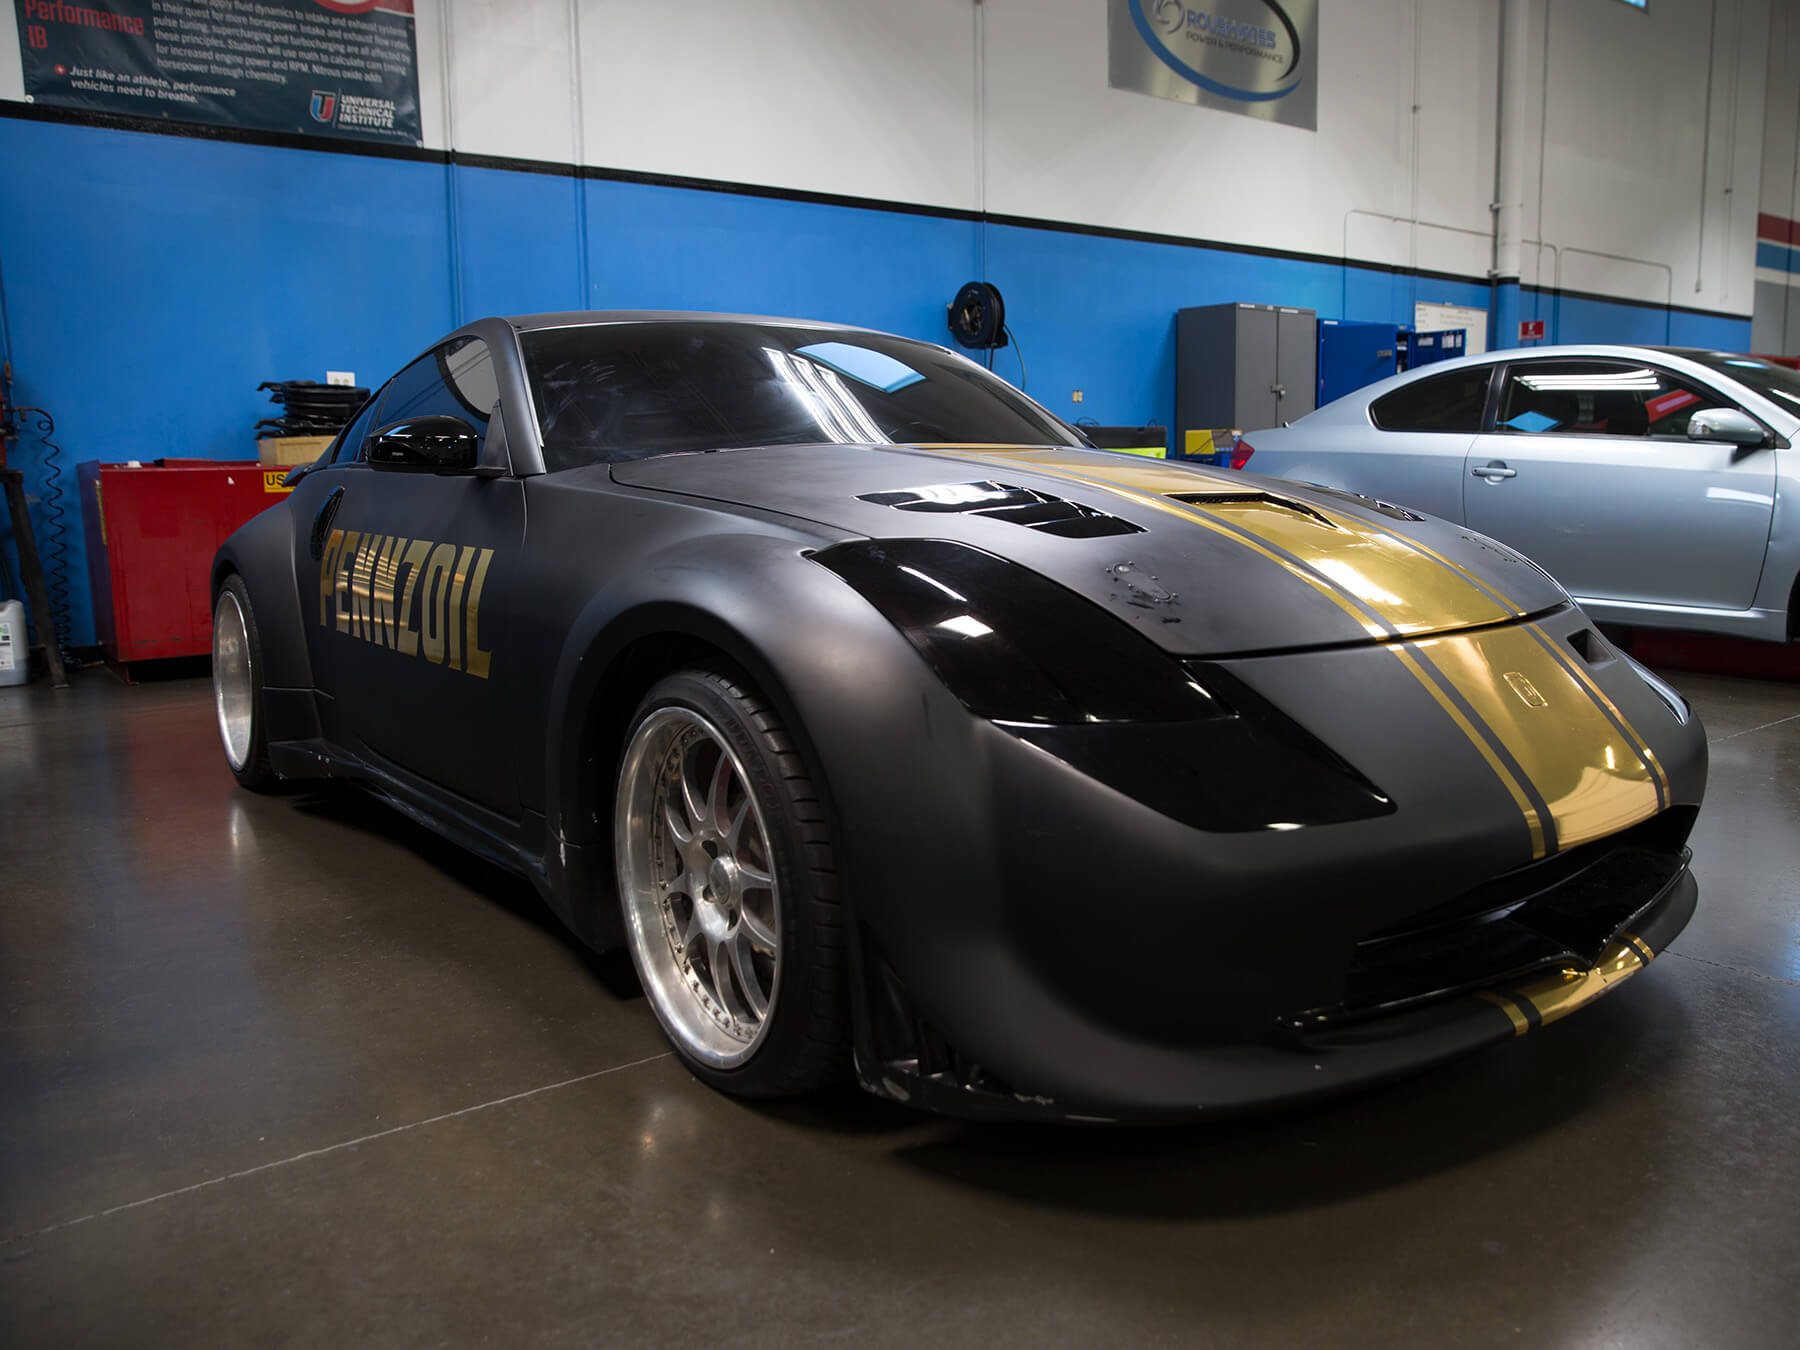 Black and gold Pennzoil car